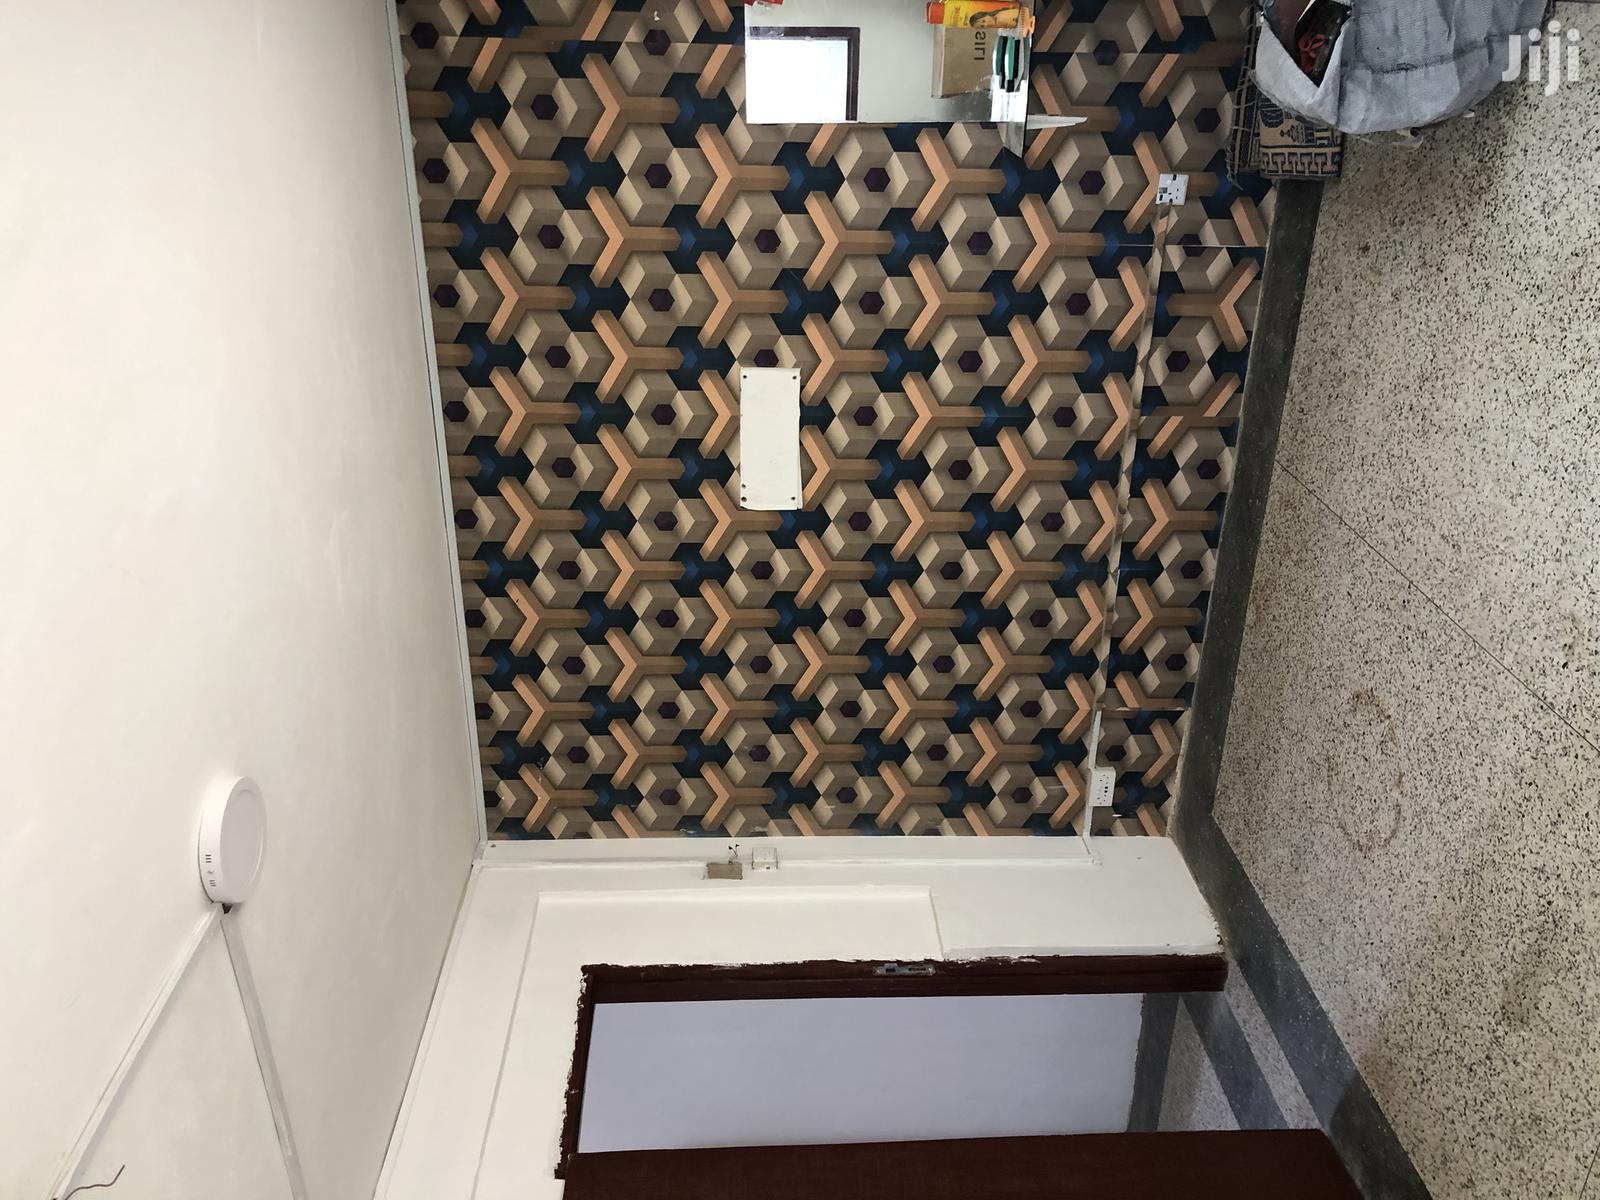 Chamber and Hall Self Contain to Let at Dzorwulu | Houses & Apartments For Rent for sale in Dzorwulu, Greater Accra, Ghana